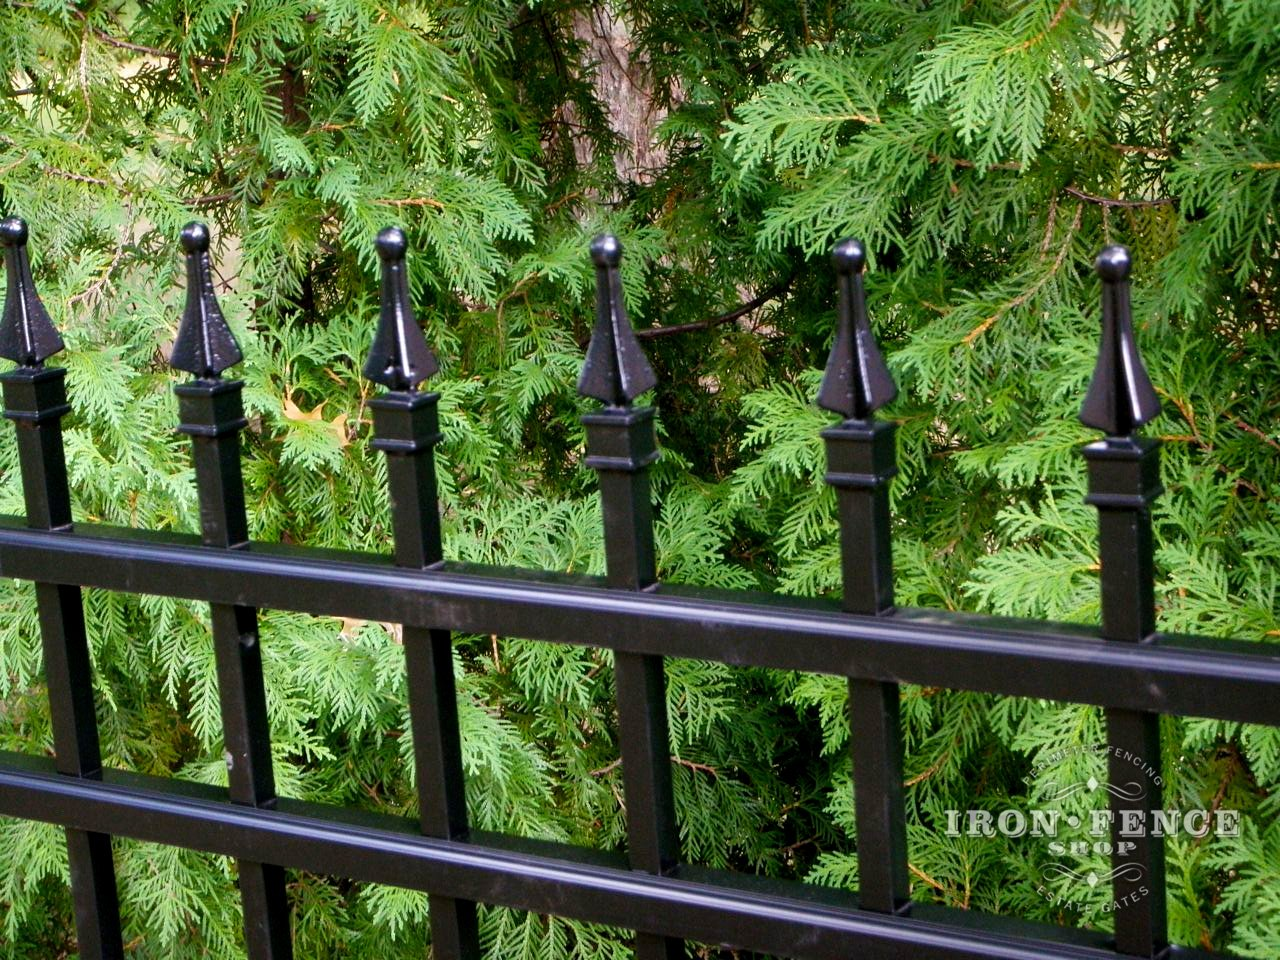 Aluminum Fence | Iron Fence Shop